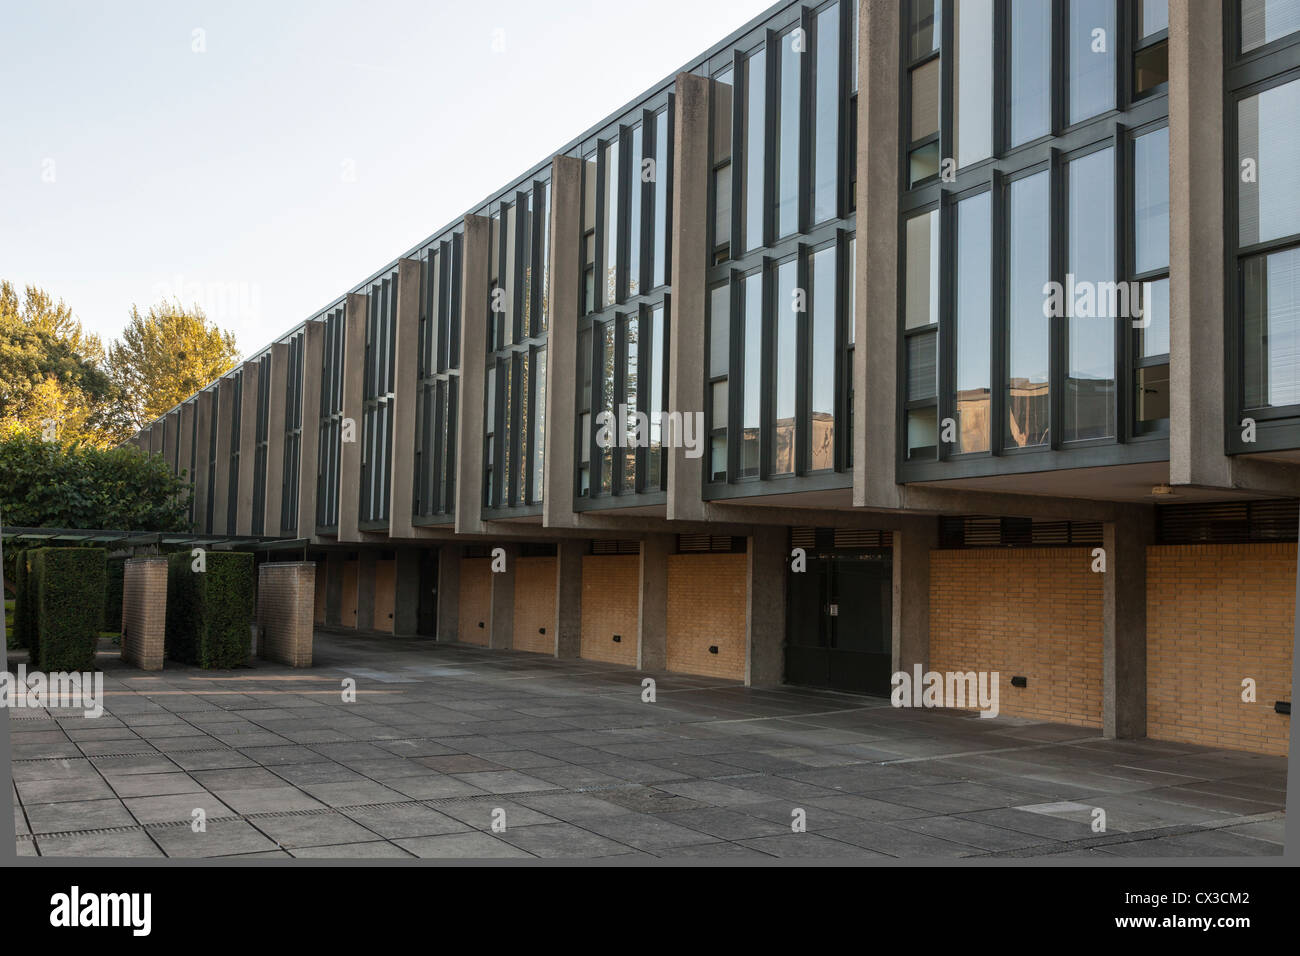 st catherine 39 s college oxford built in 1962 and designed. Black Bedroom Furniture Sets. Home Design Ideas